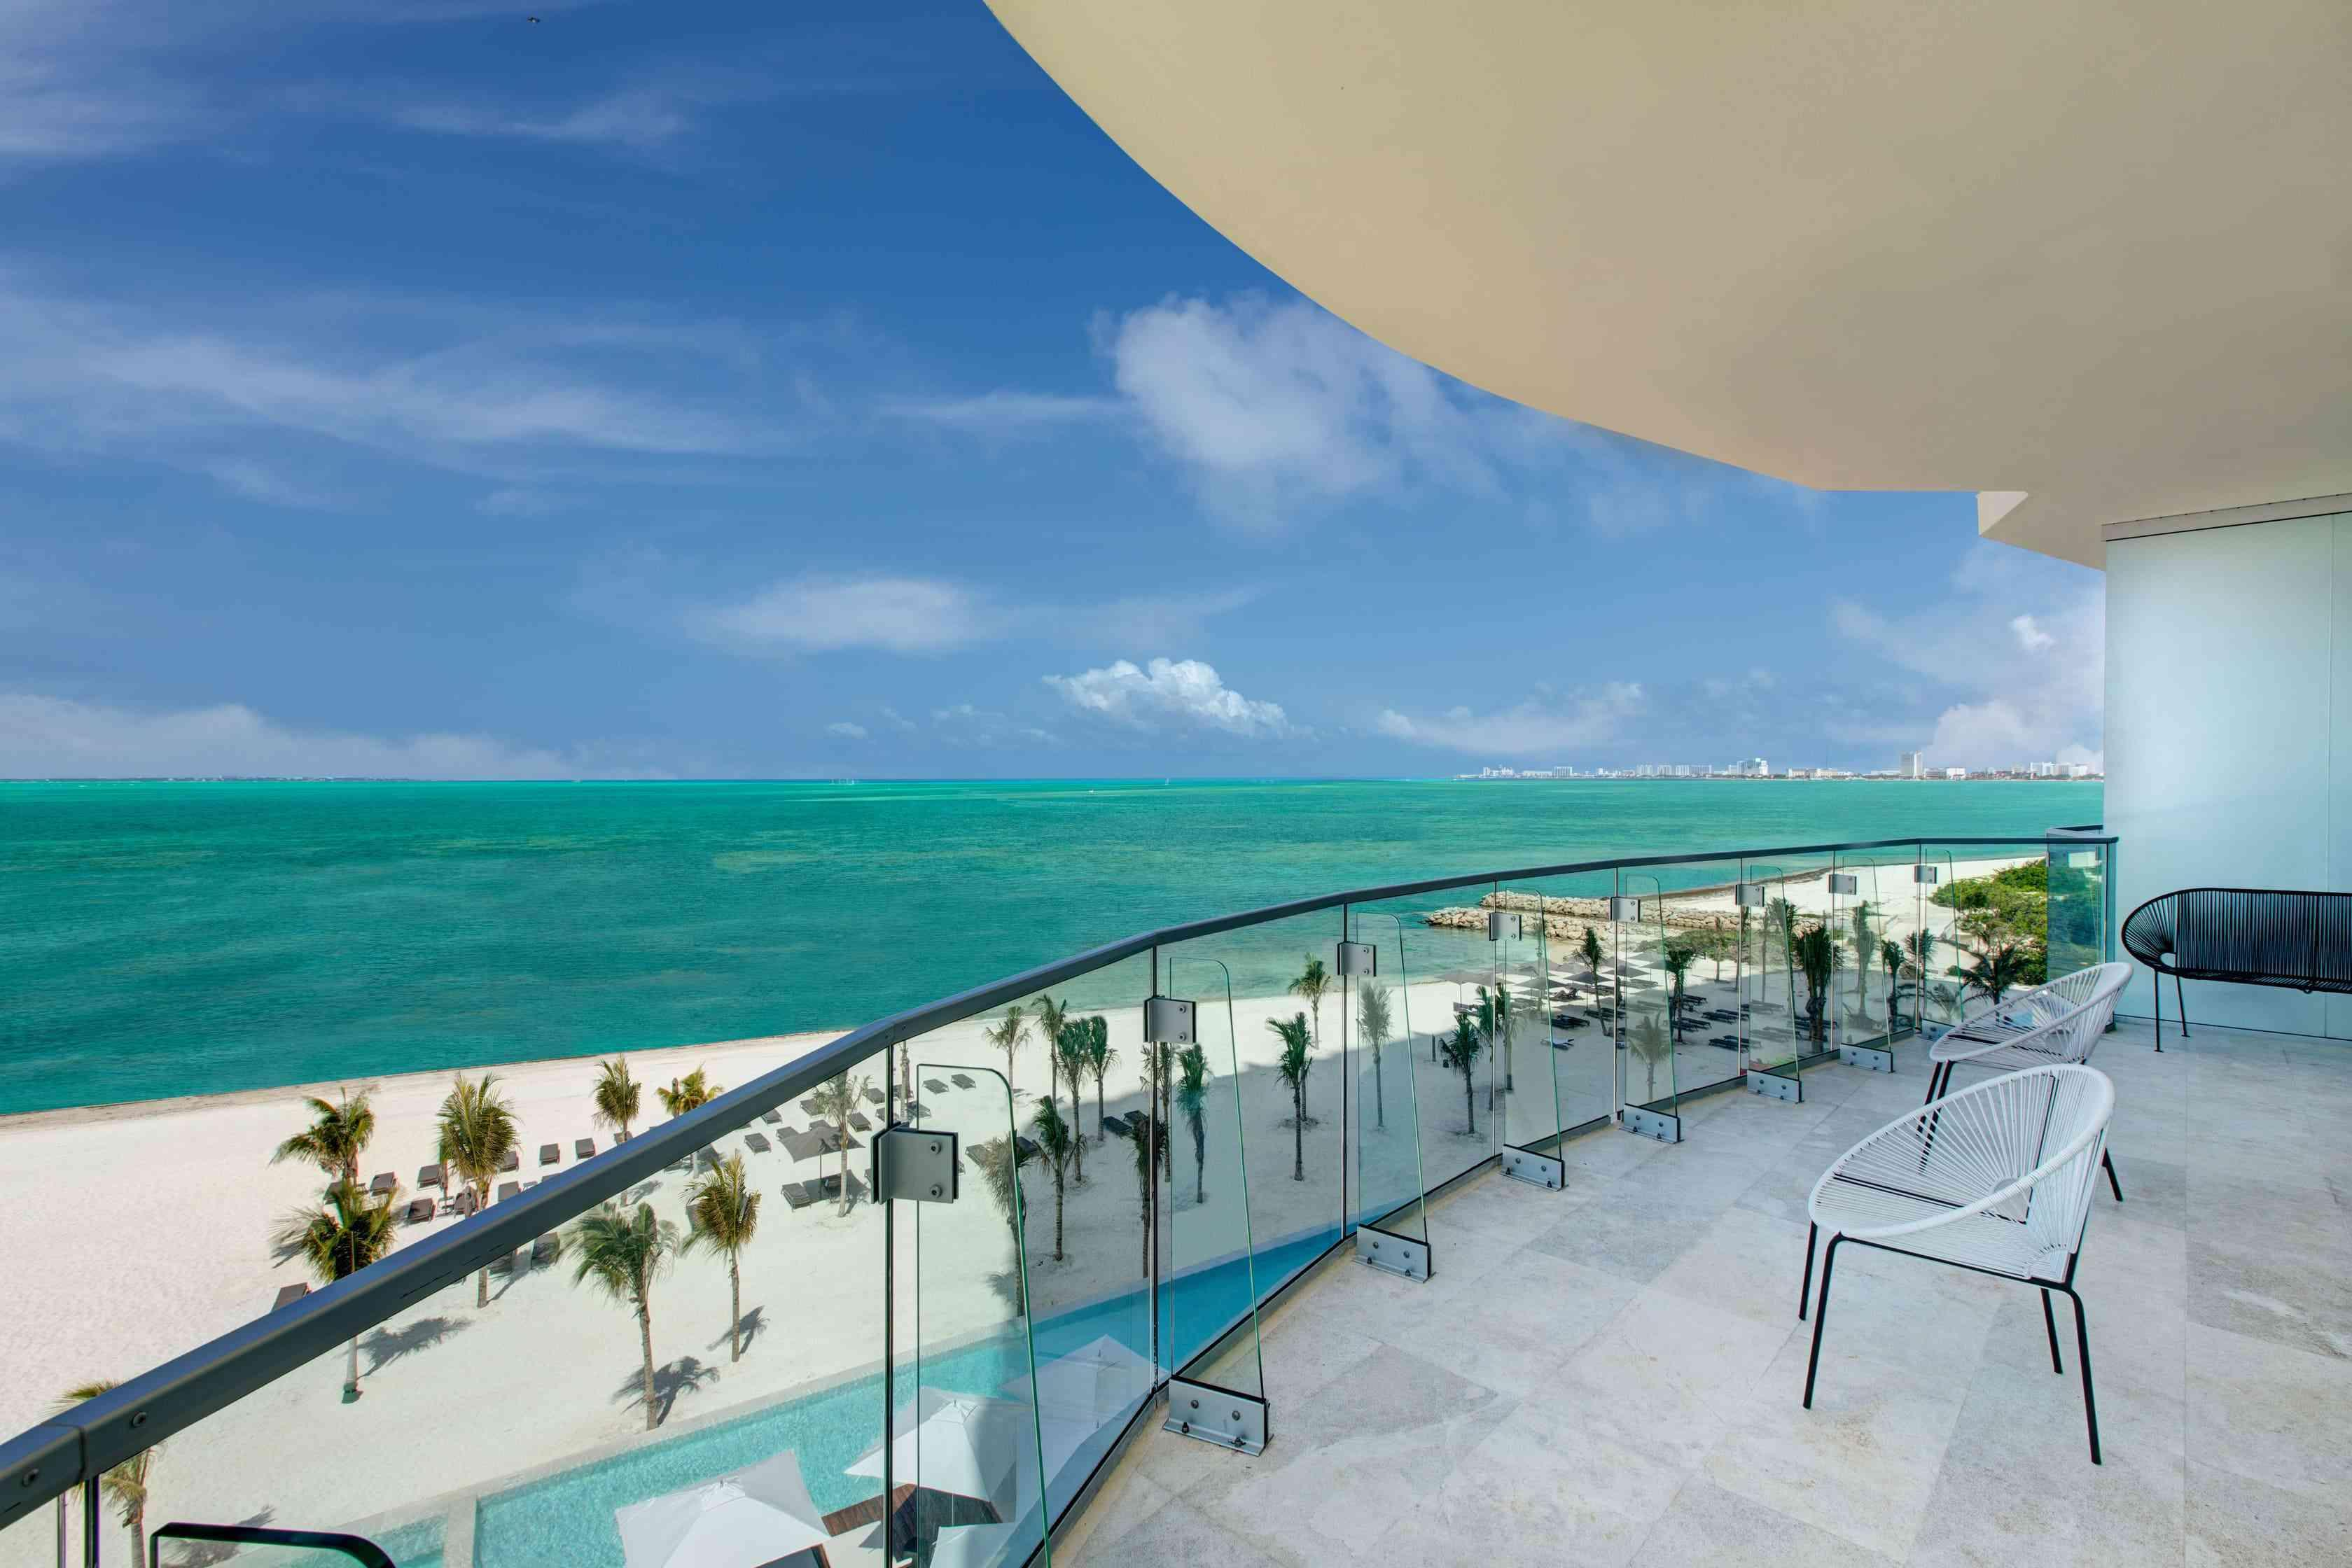 Rounded balcony with a view of the beach